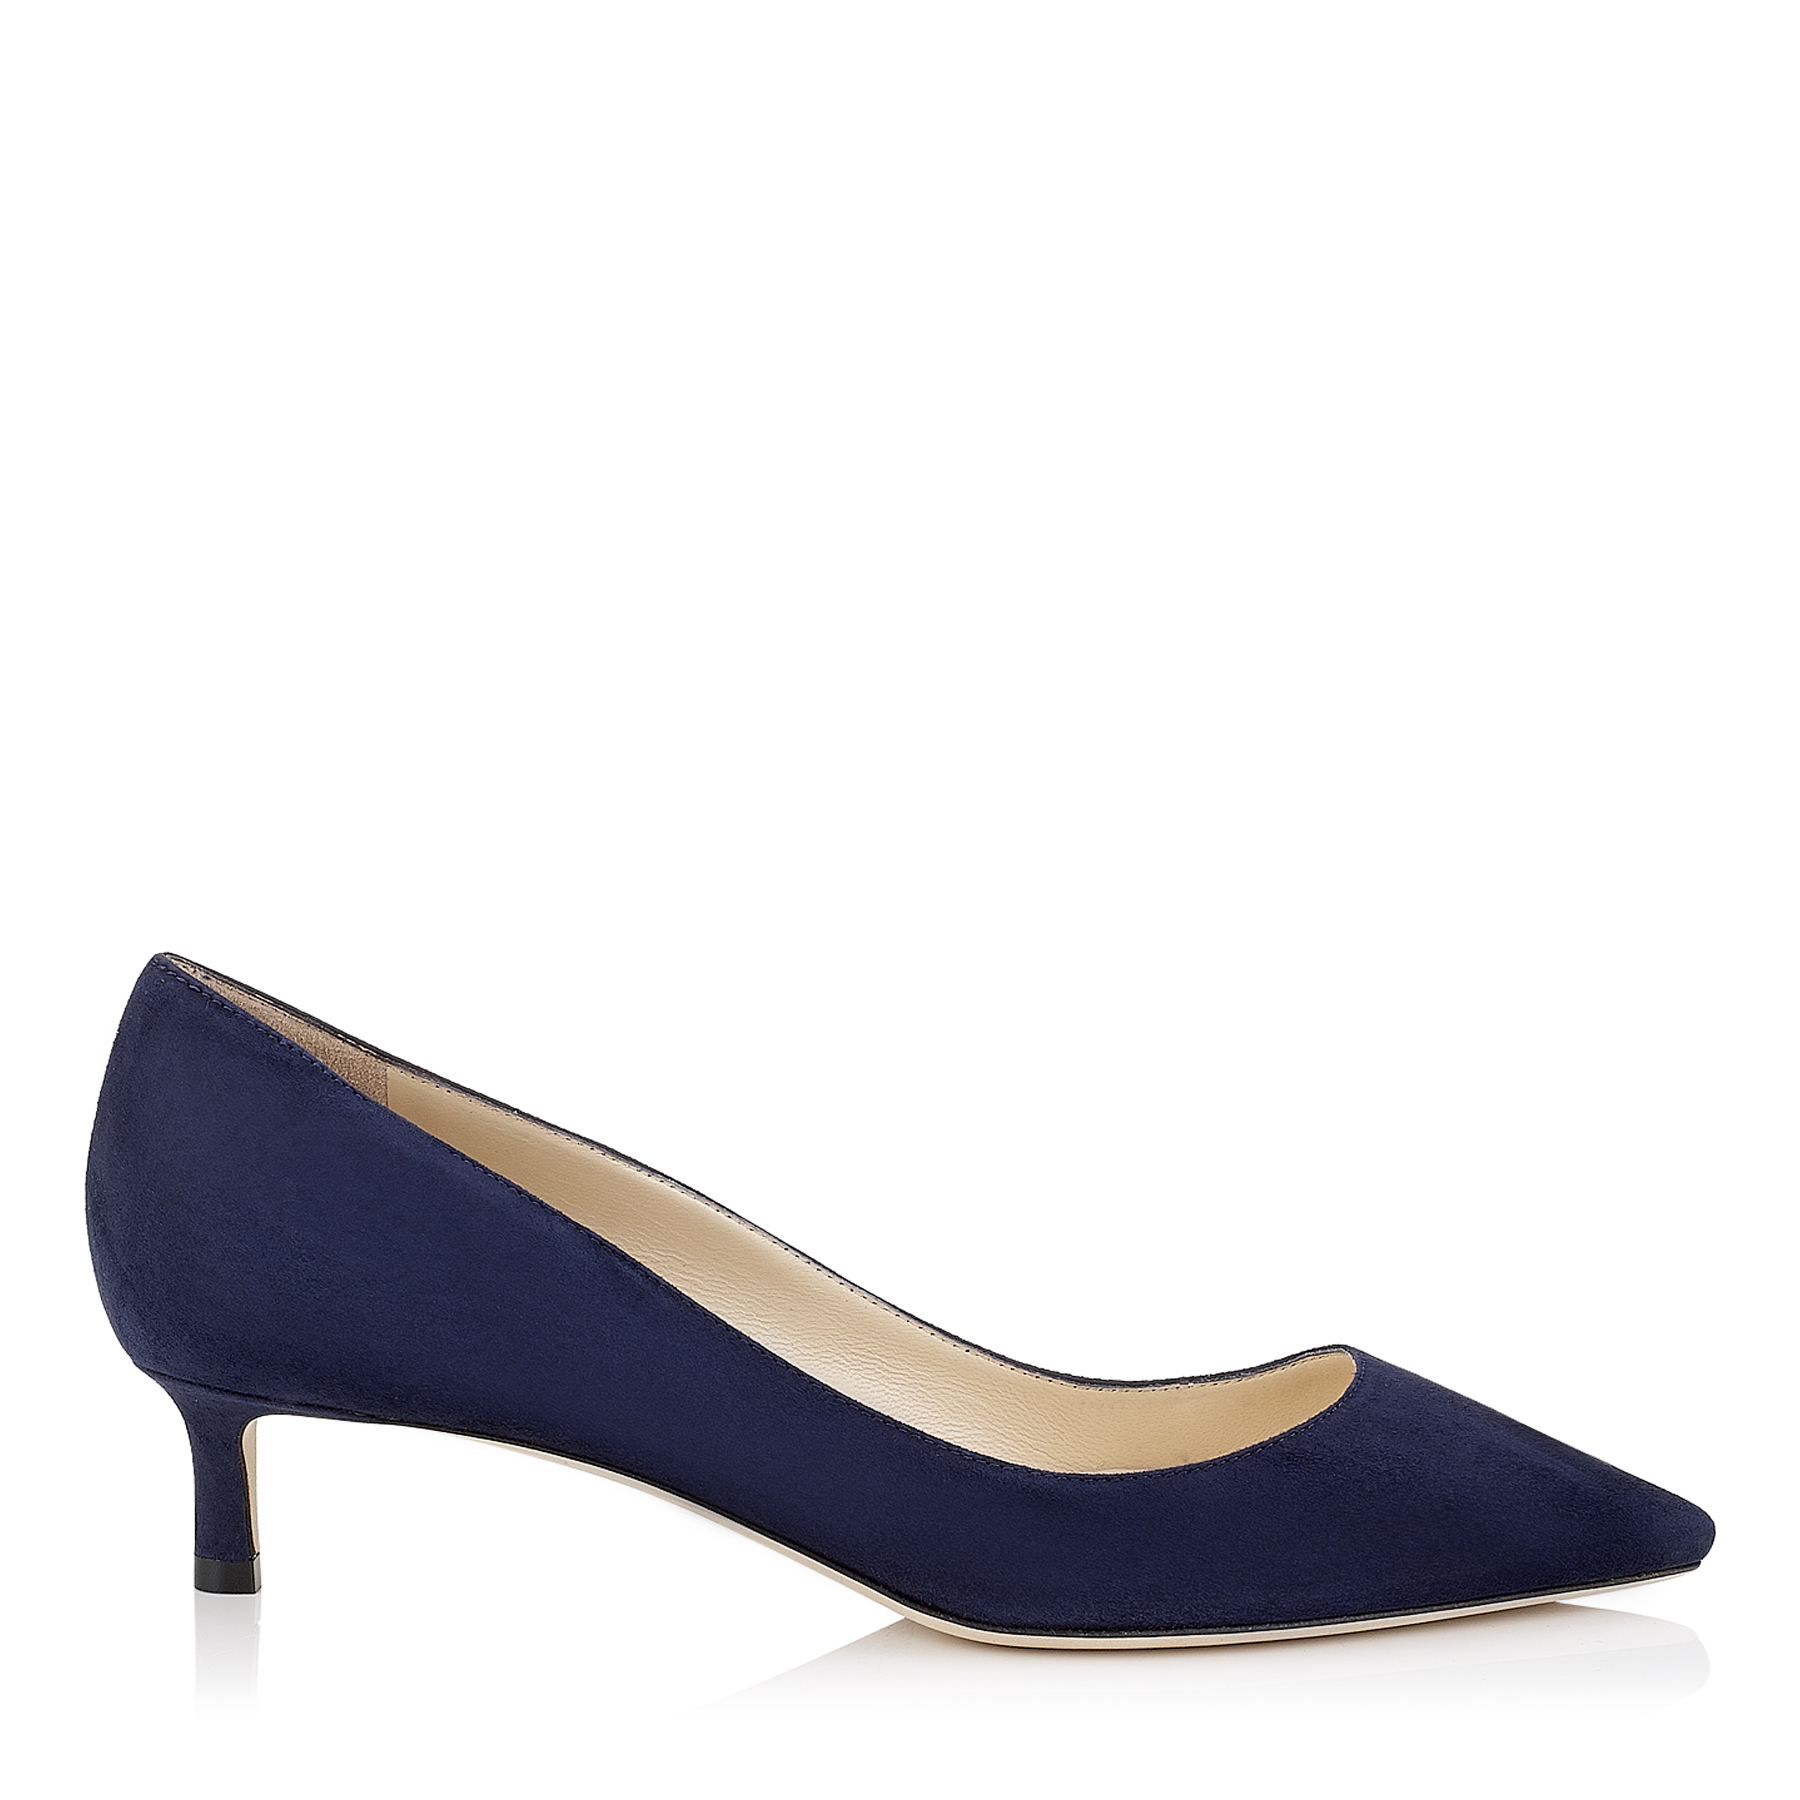 ROMY 40 Navy Suede Pointy Toe Pumps